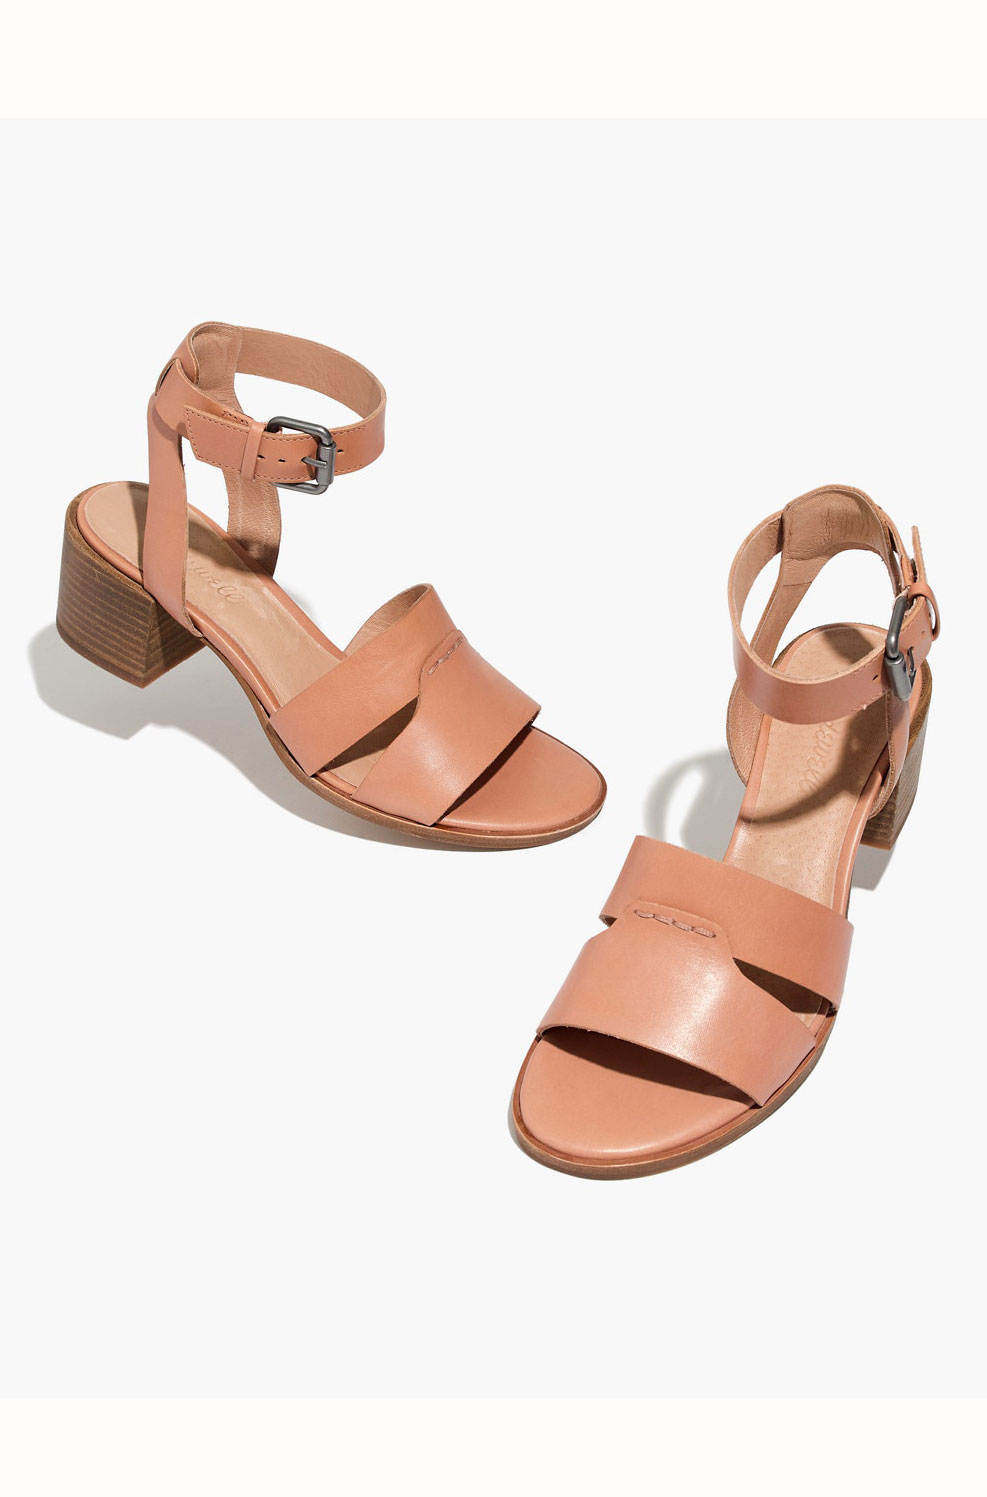 Madewell Neutral Sandals    $128